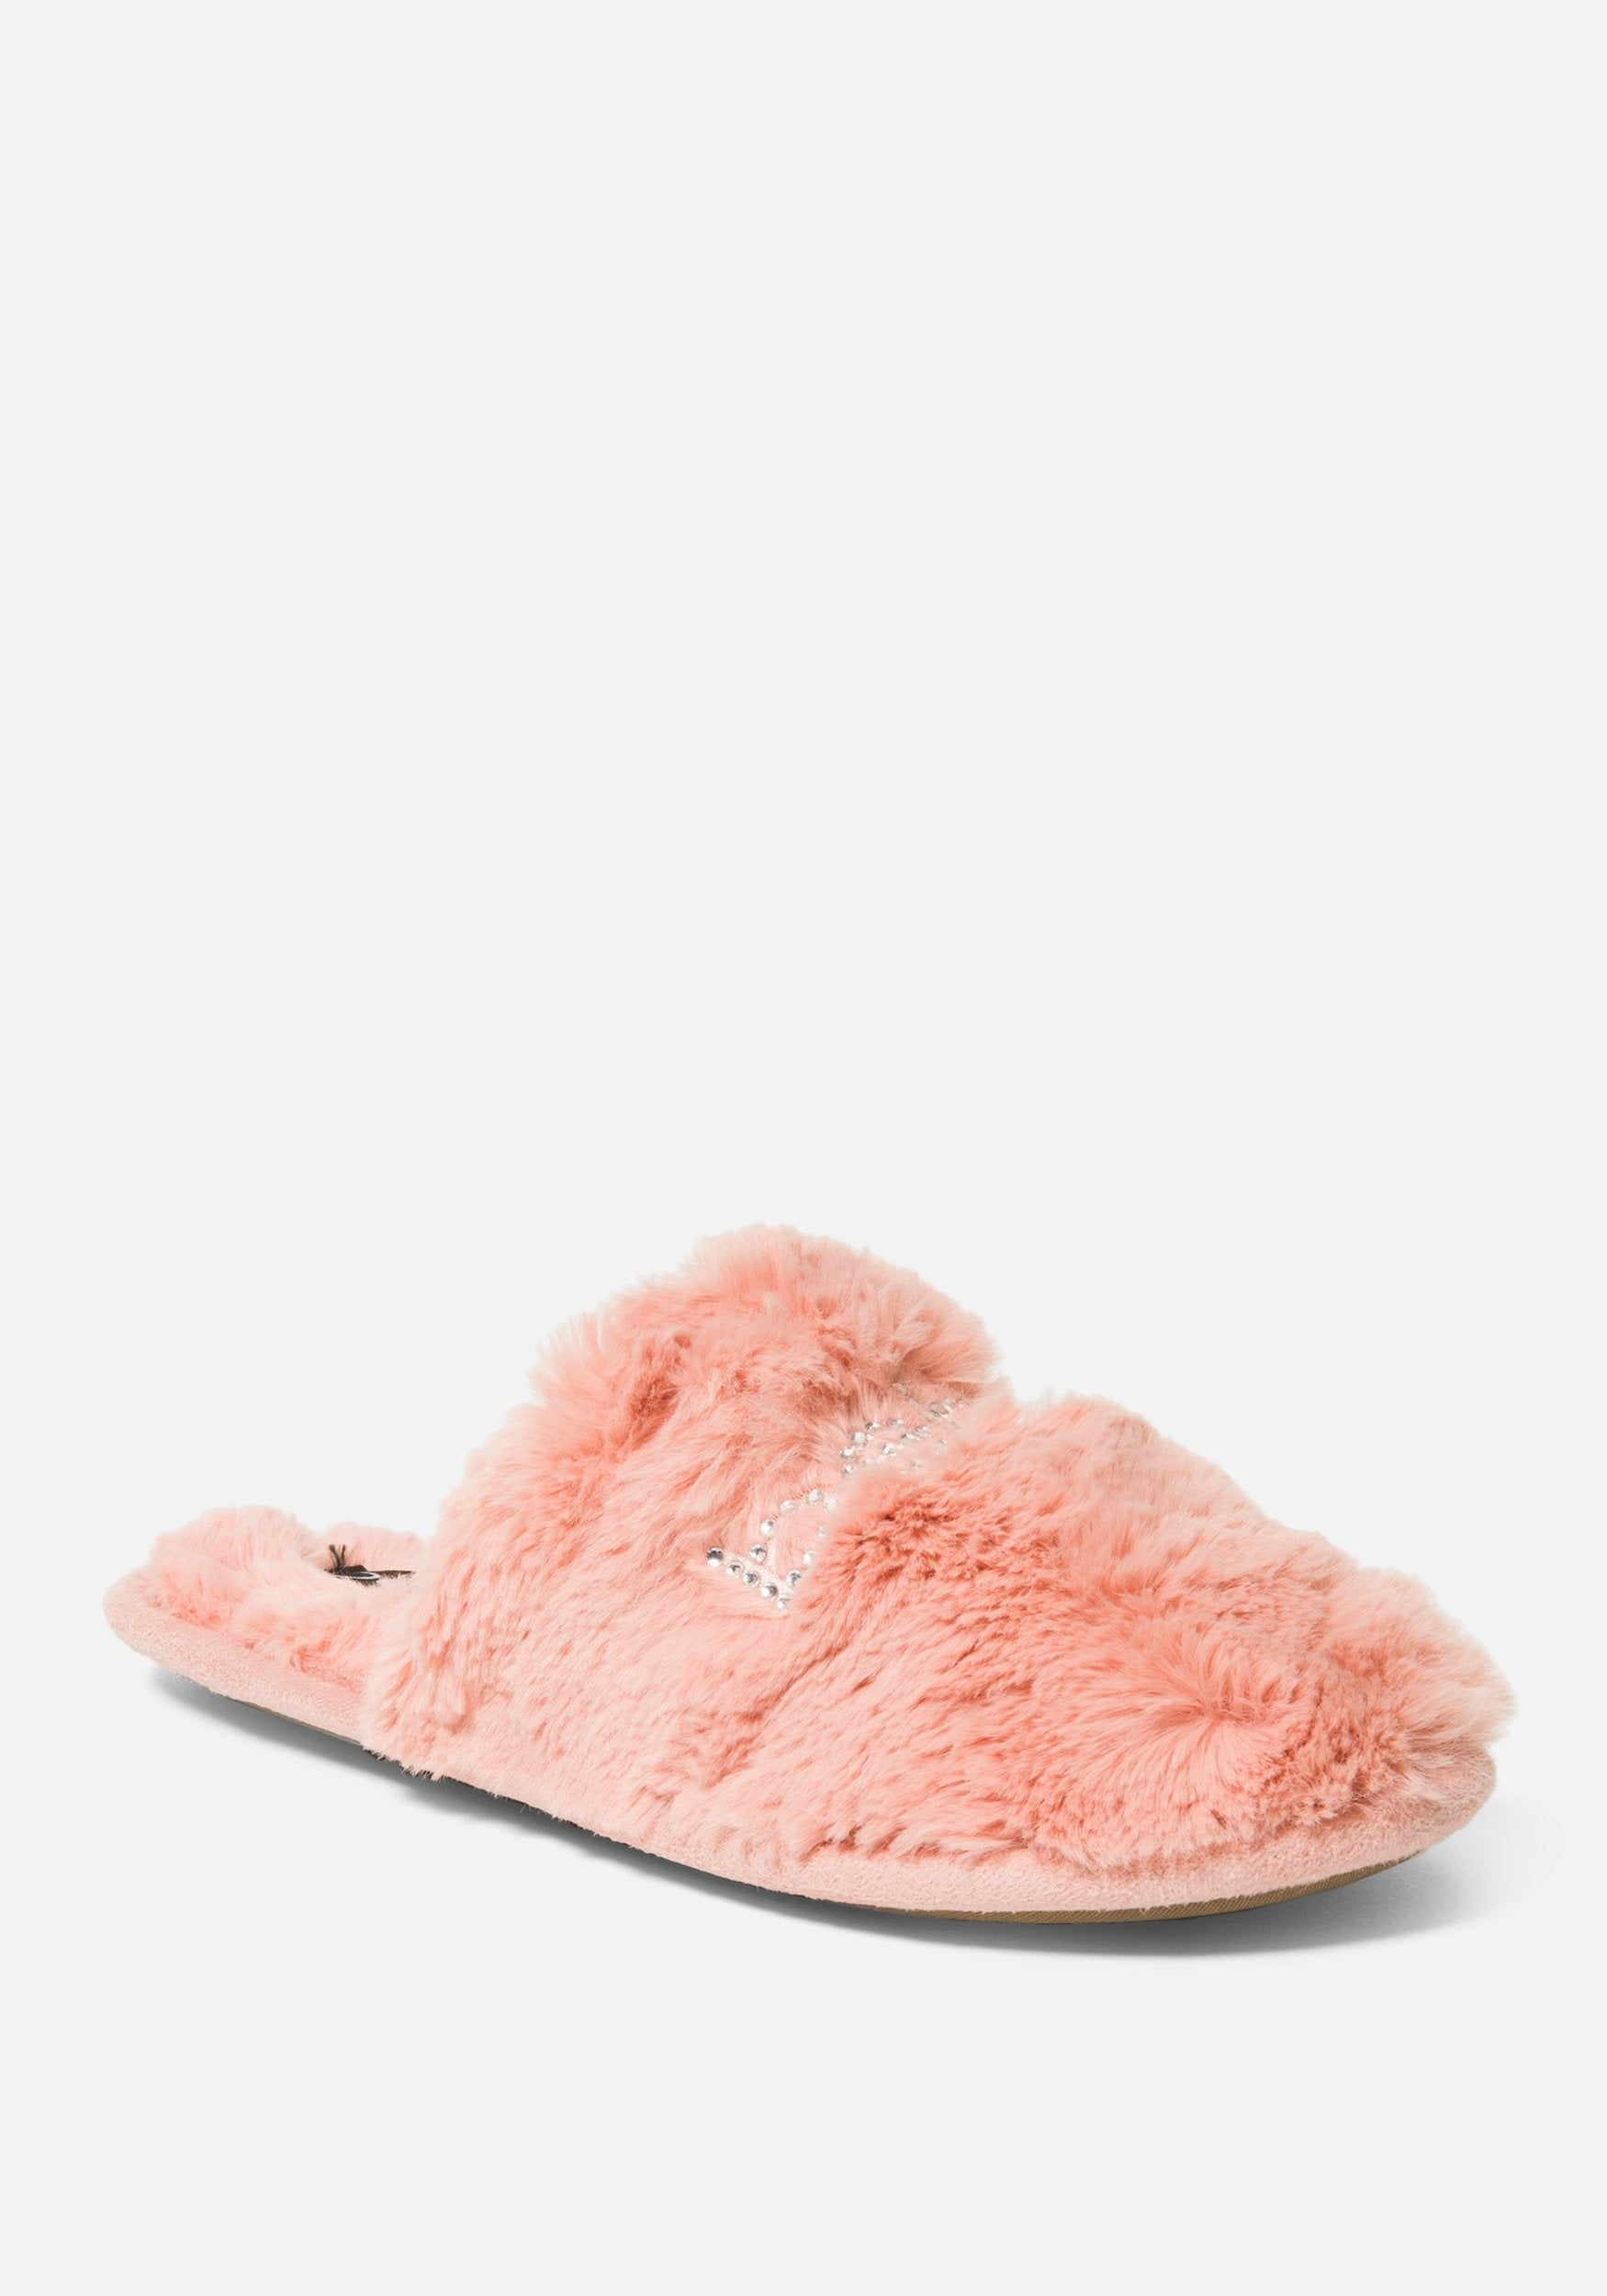 Bebe Women's Charee Faux Fur Slippers Shoe, Size 6 in PINK Synthetic